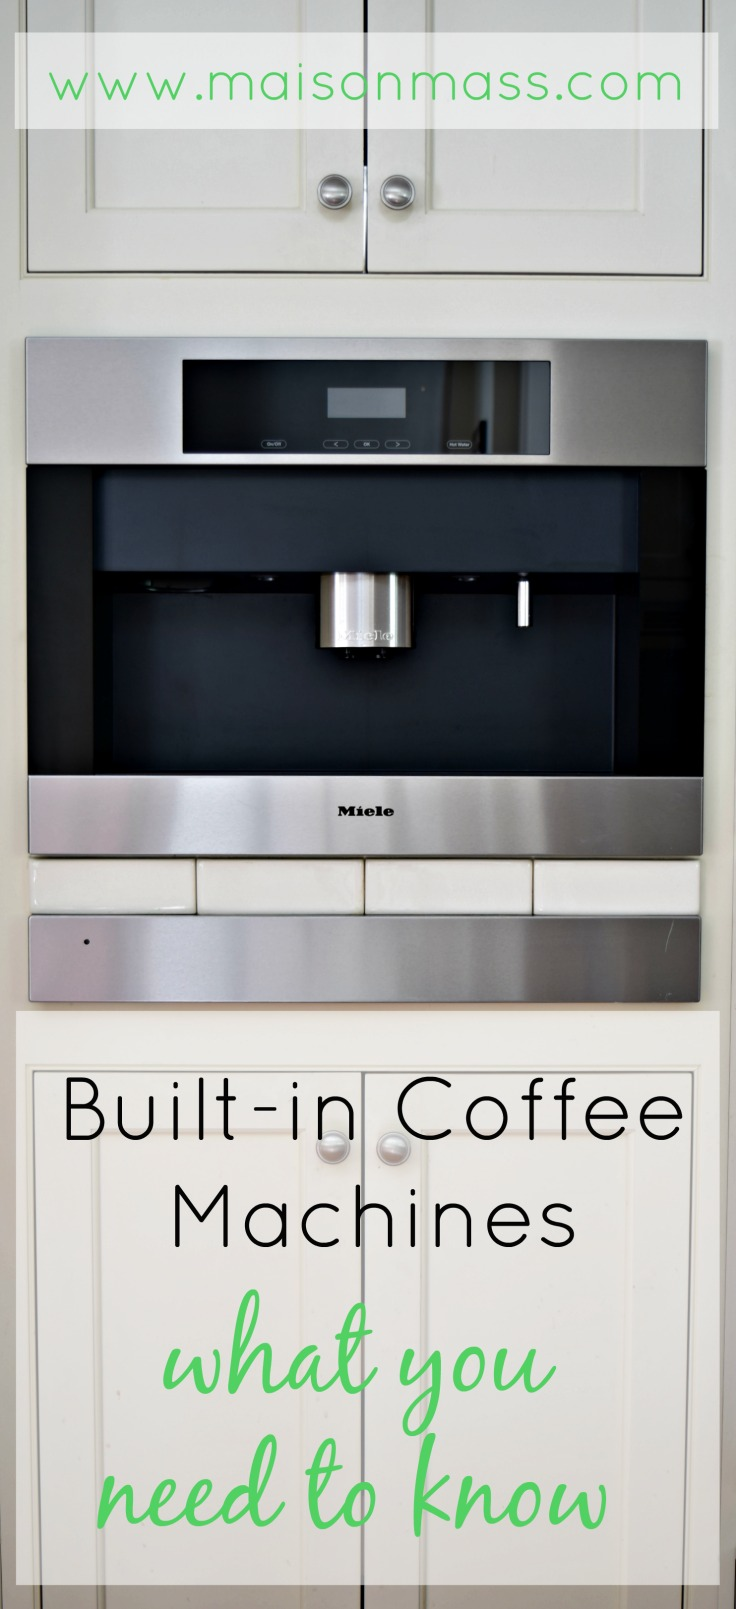 Built-in Coffee Machines: What You Need To Know